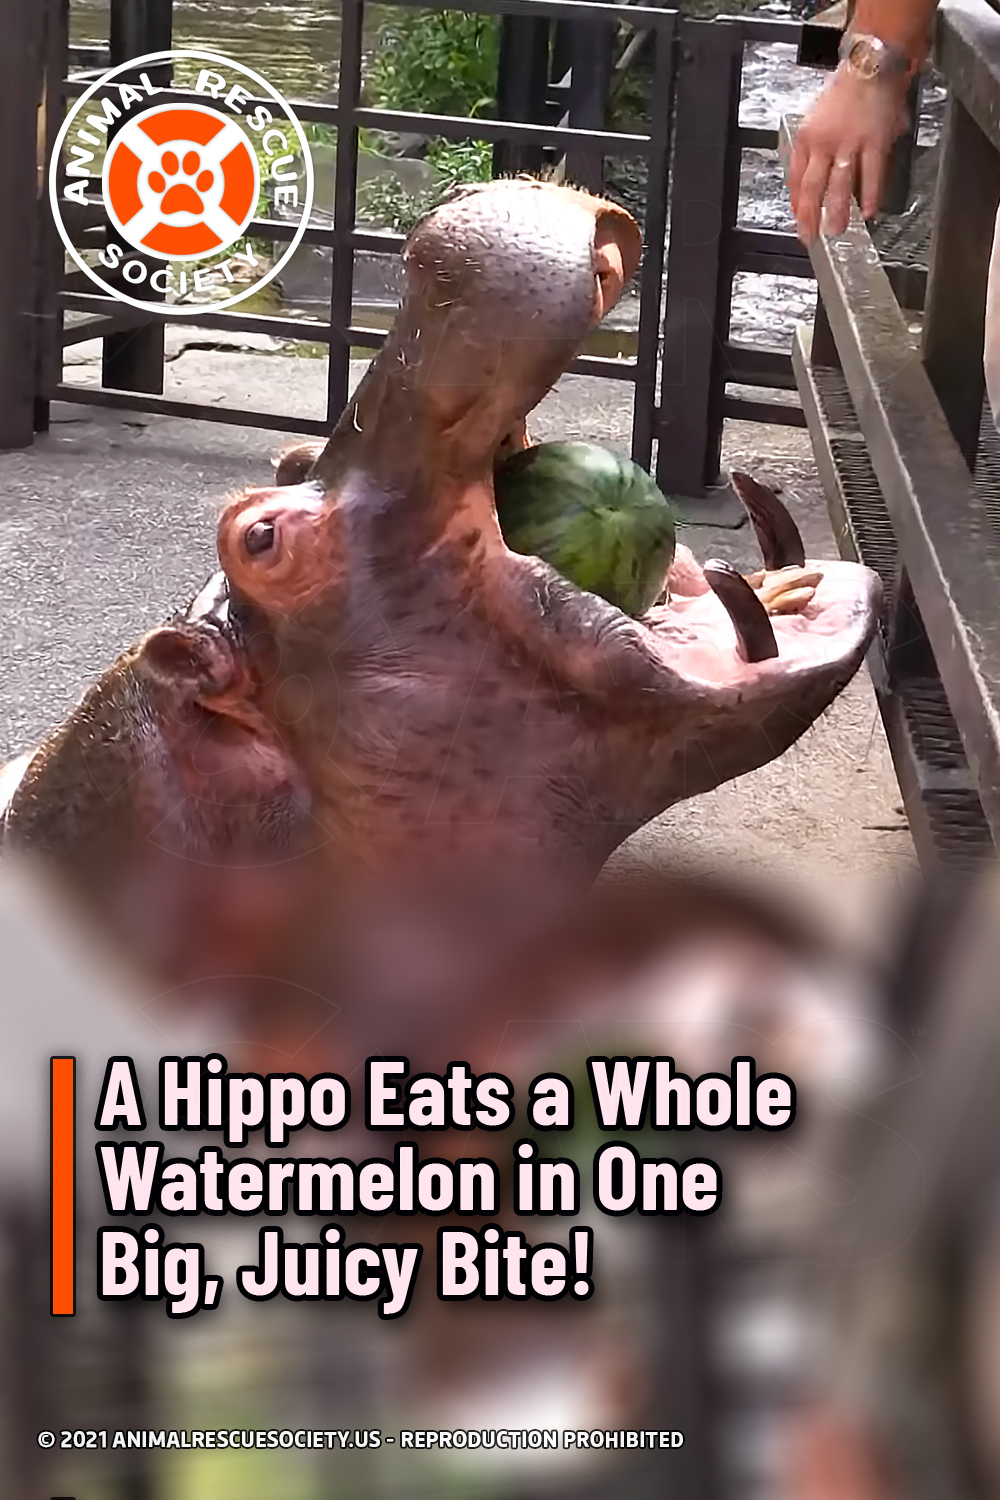 A Hippo Eats a Whole Watermelon in One Big, Juicy Bite!